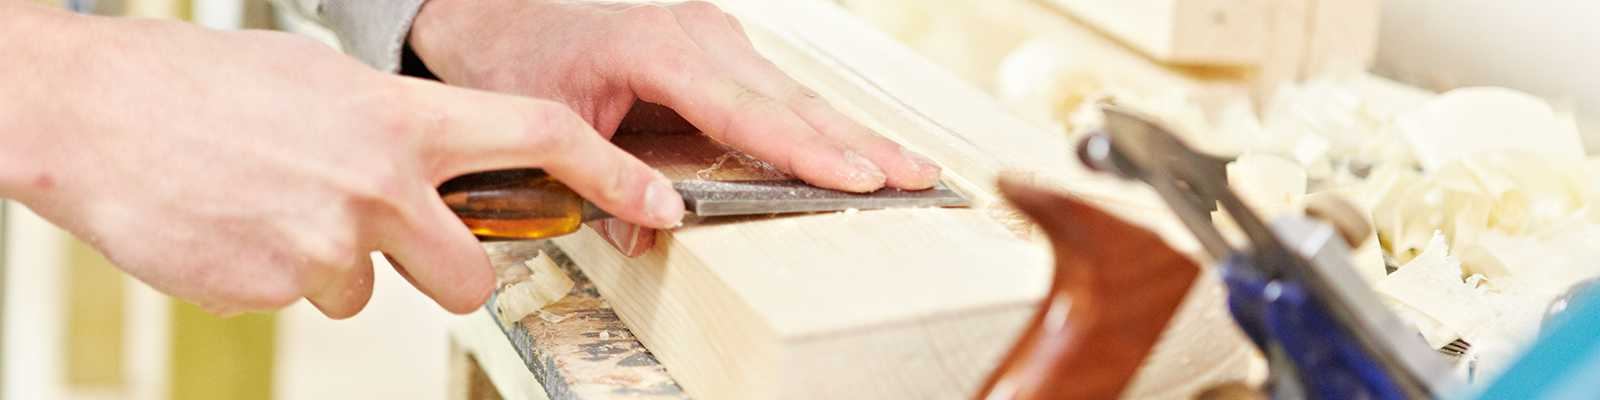 NVQ Level 2 Carpentry Course